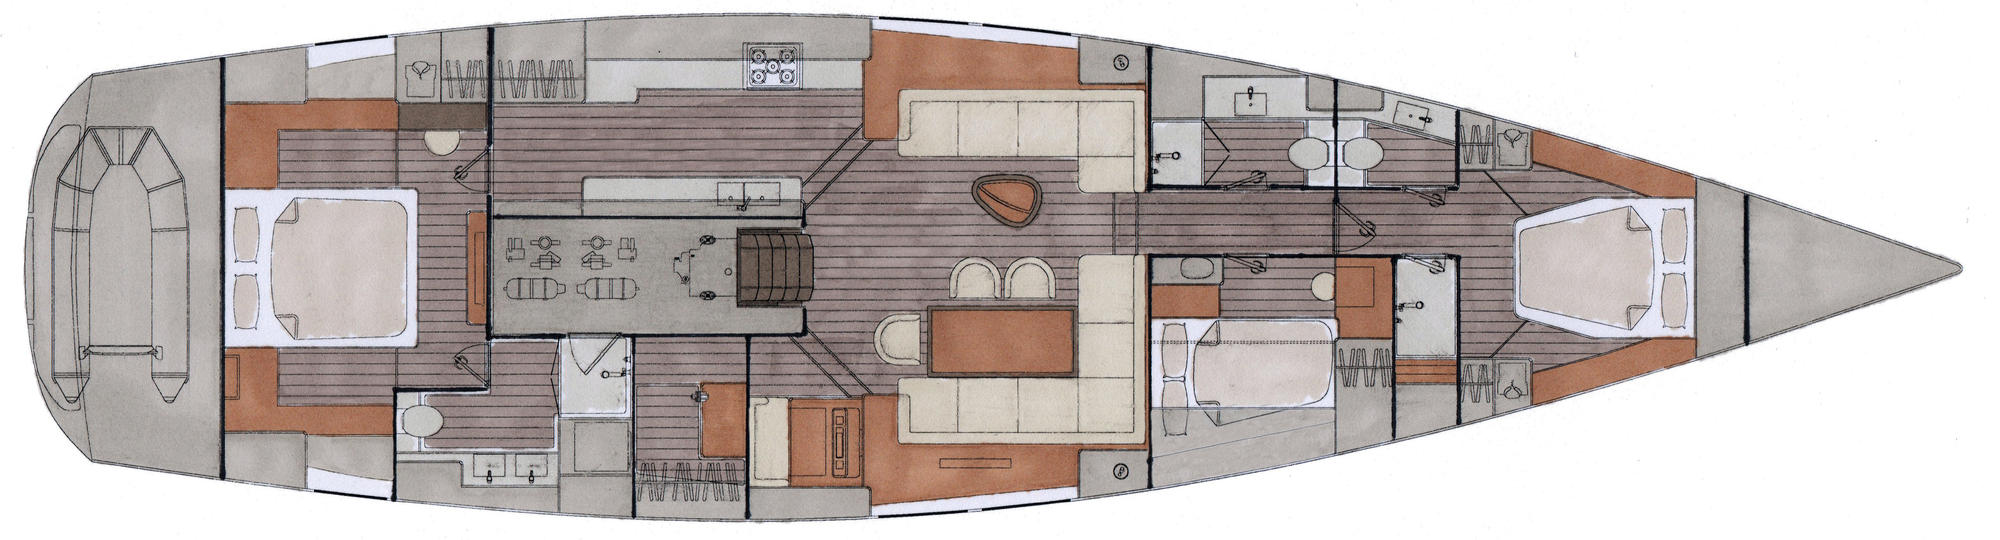 Conyplex Contest 72 CS - contest_72cs_interior_layout_b.jpg